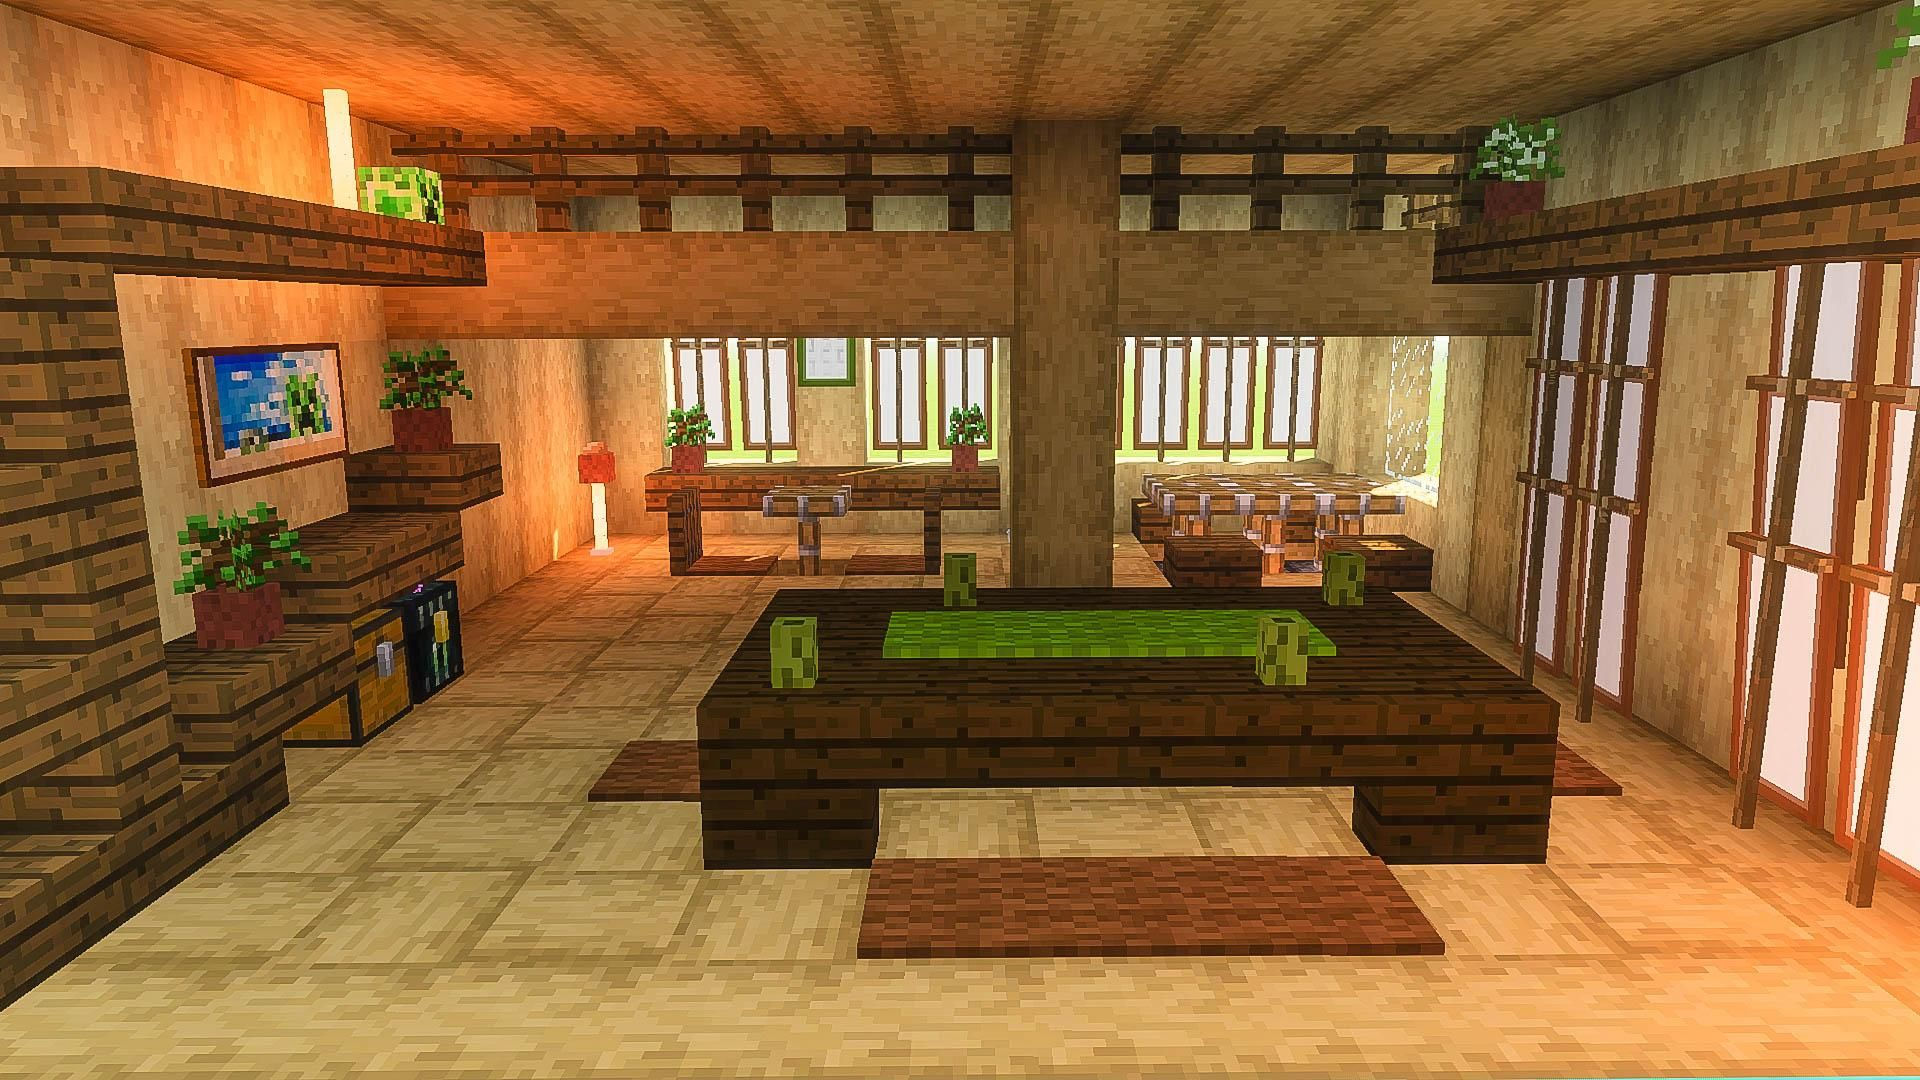 Japanese Inn Interior Minecraft Minecraft Minecraft House